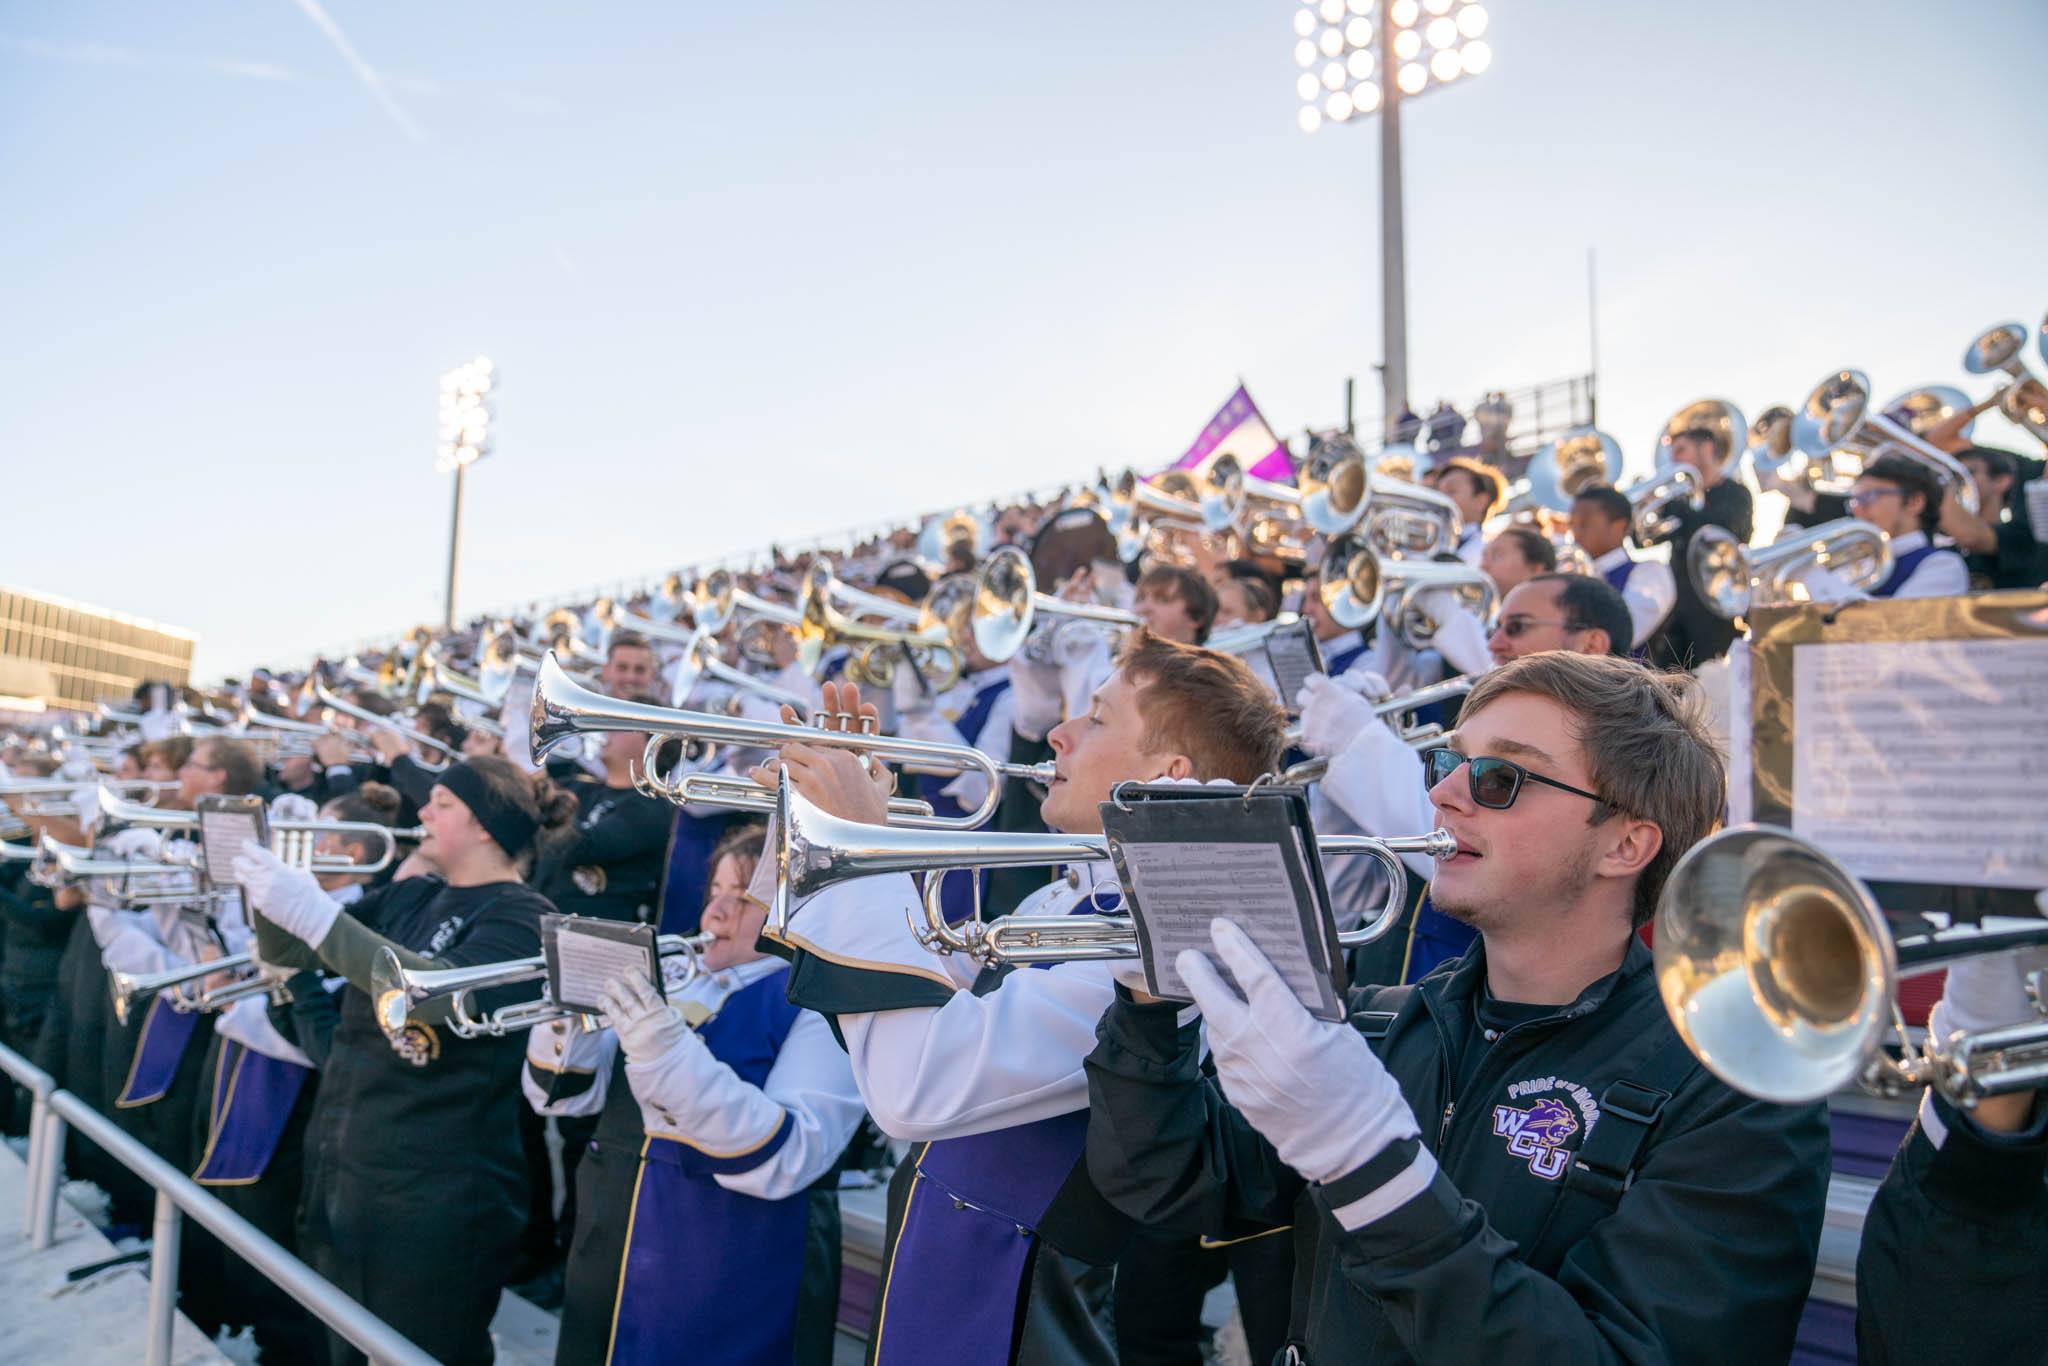 Marching band plays in the stands.